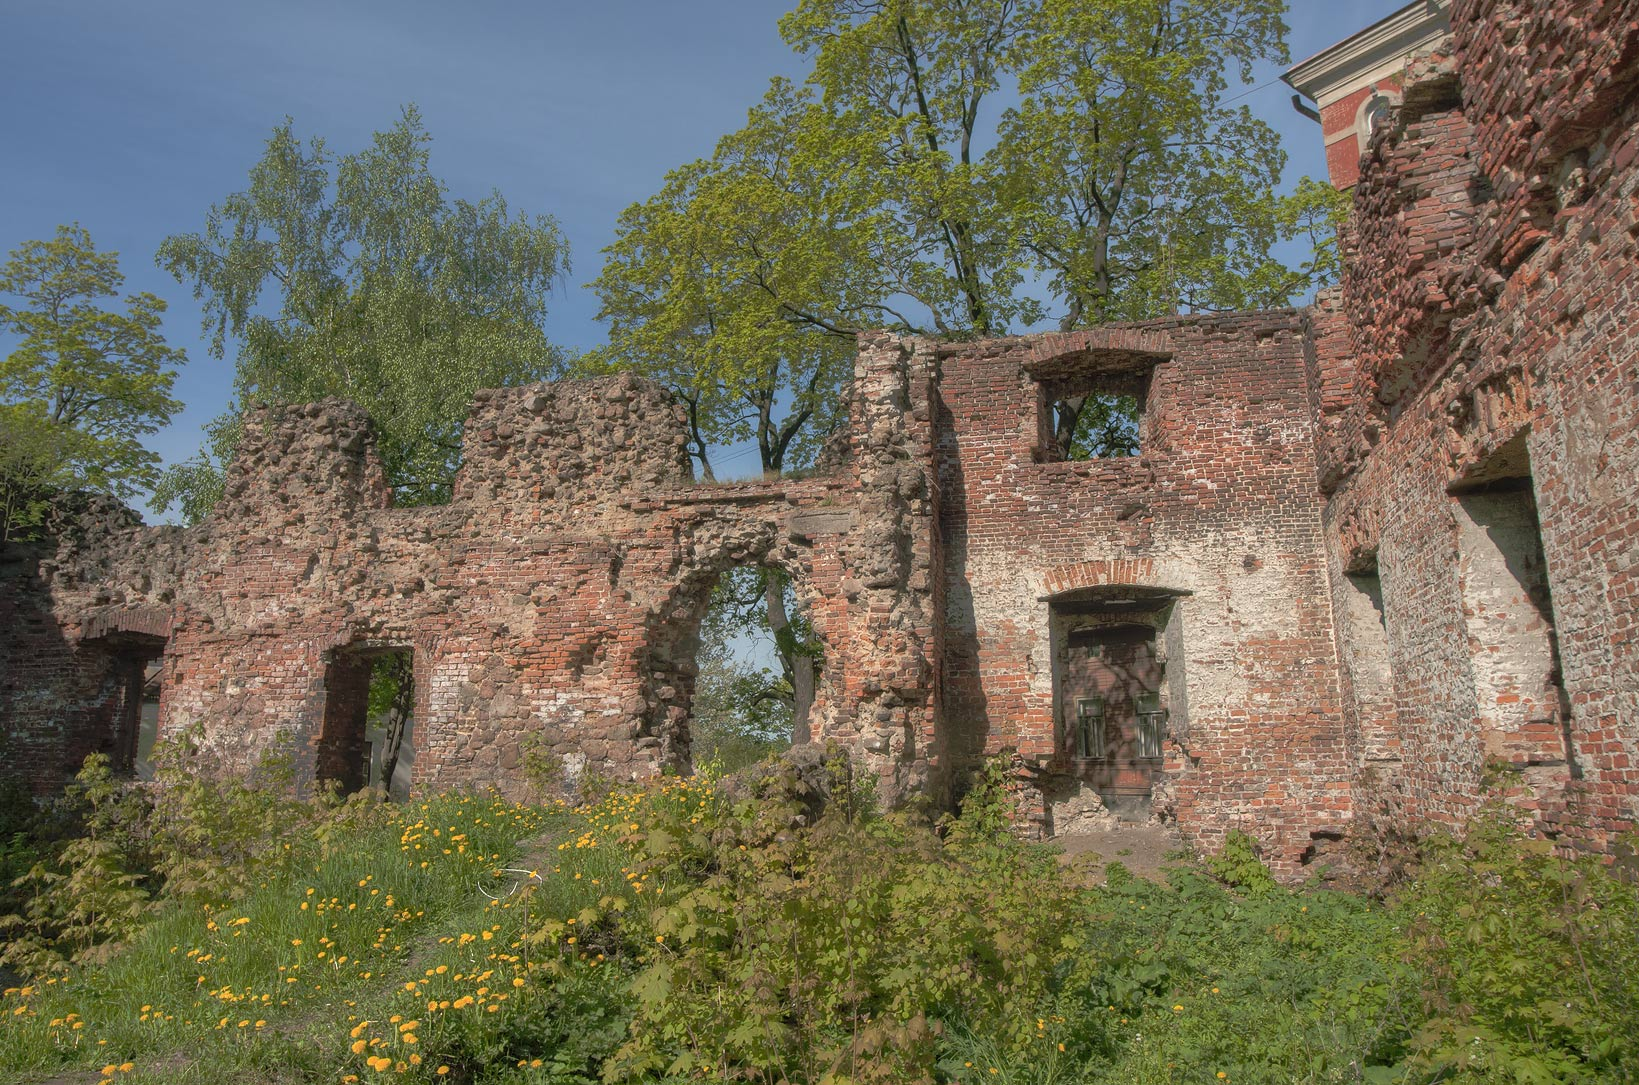 Ruins of Dome Cathedral (old city church). Vyborg, Russia